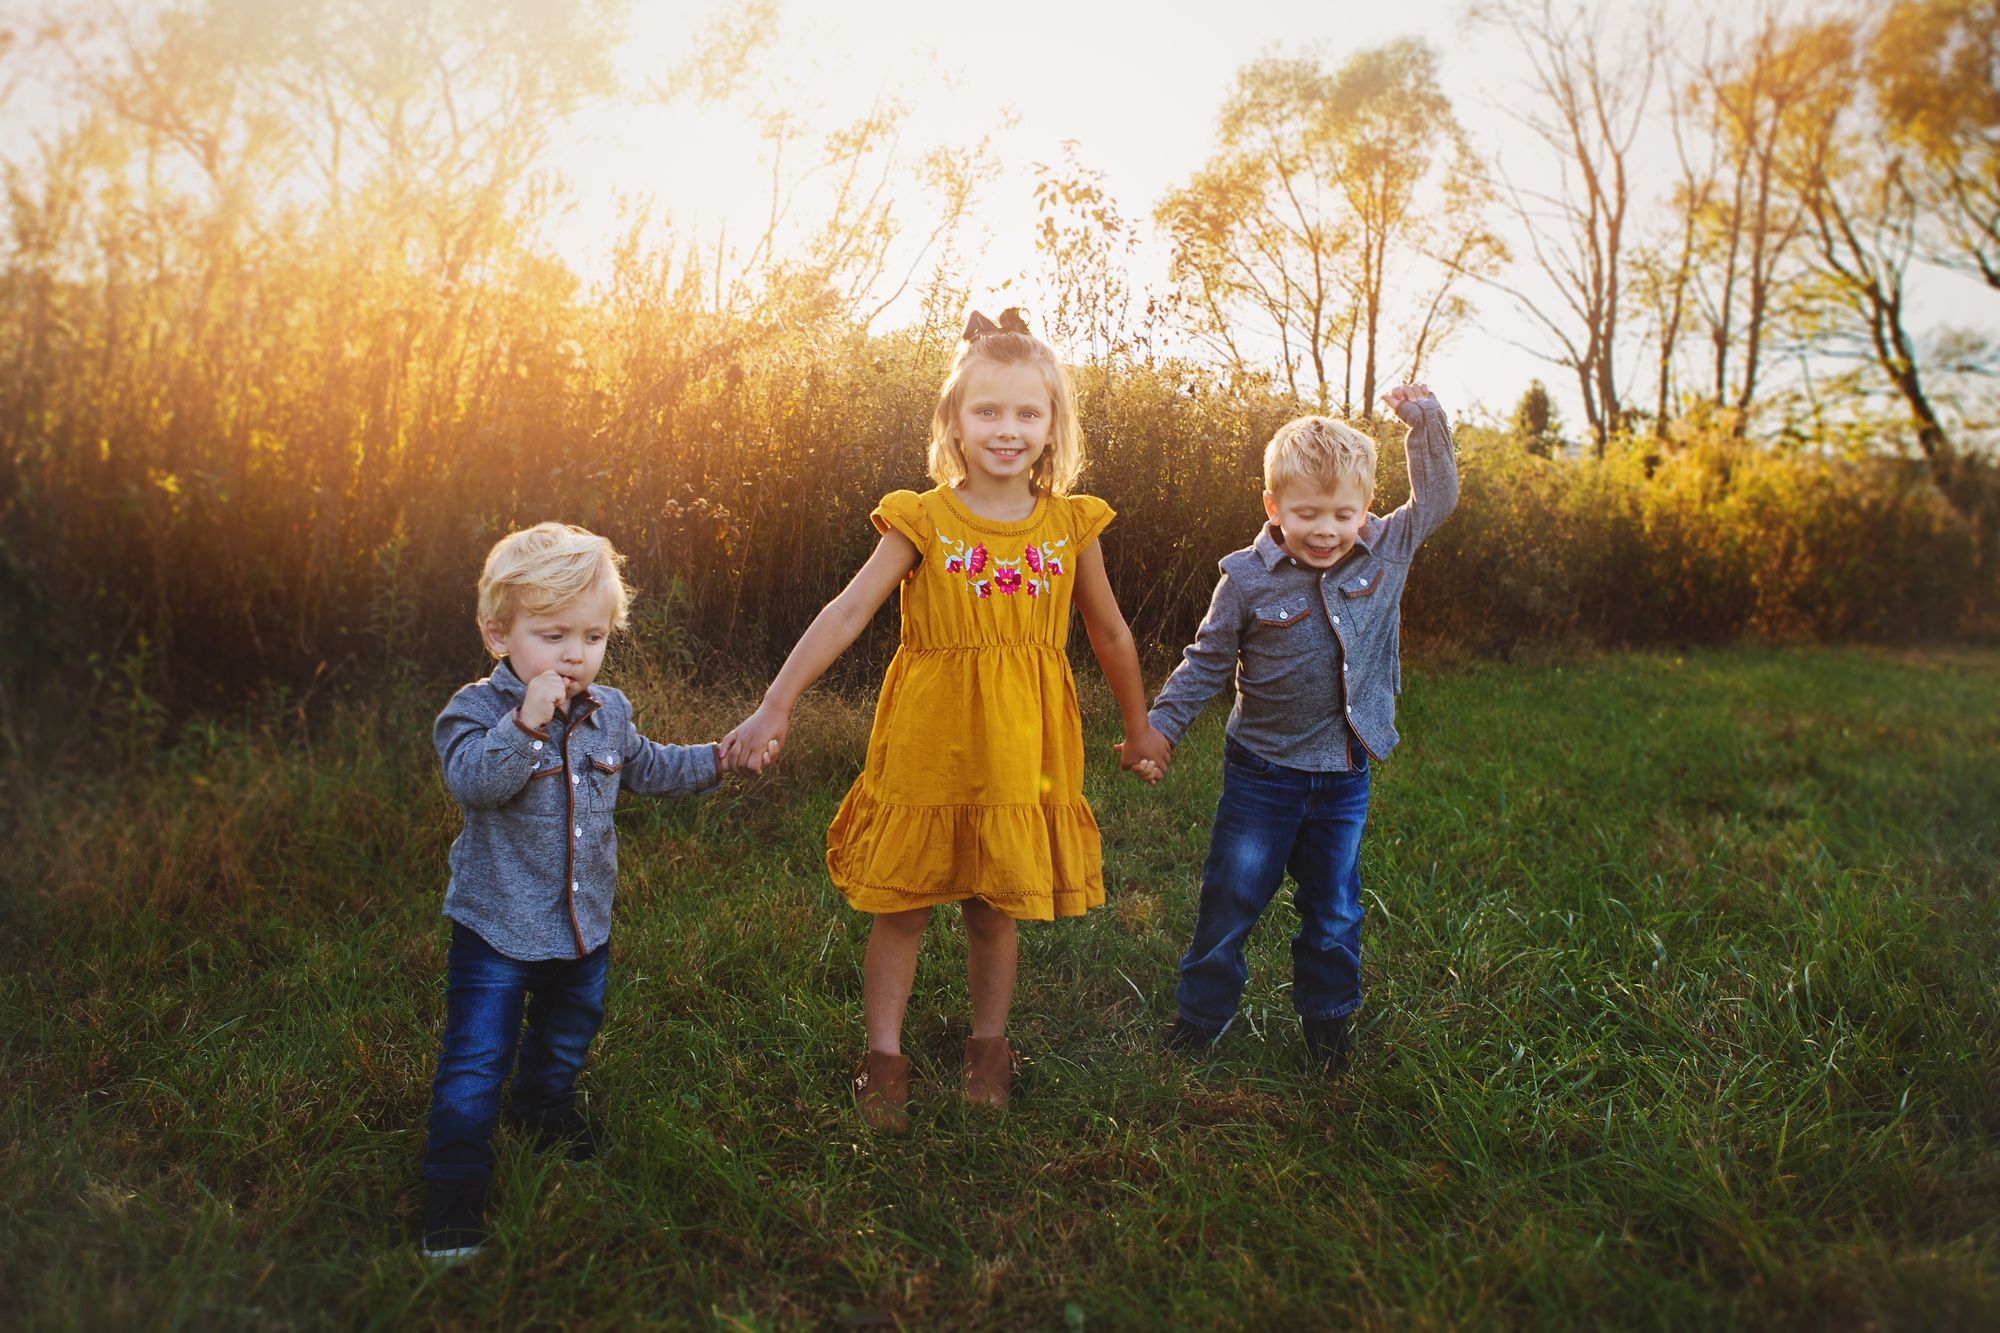 Kids photo in an outdoor family session